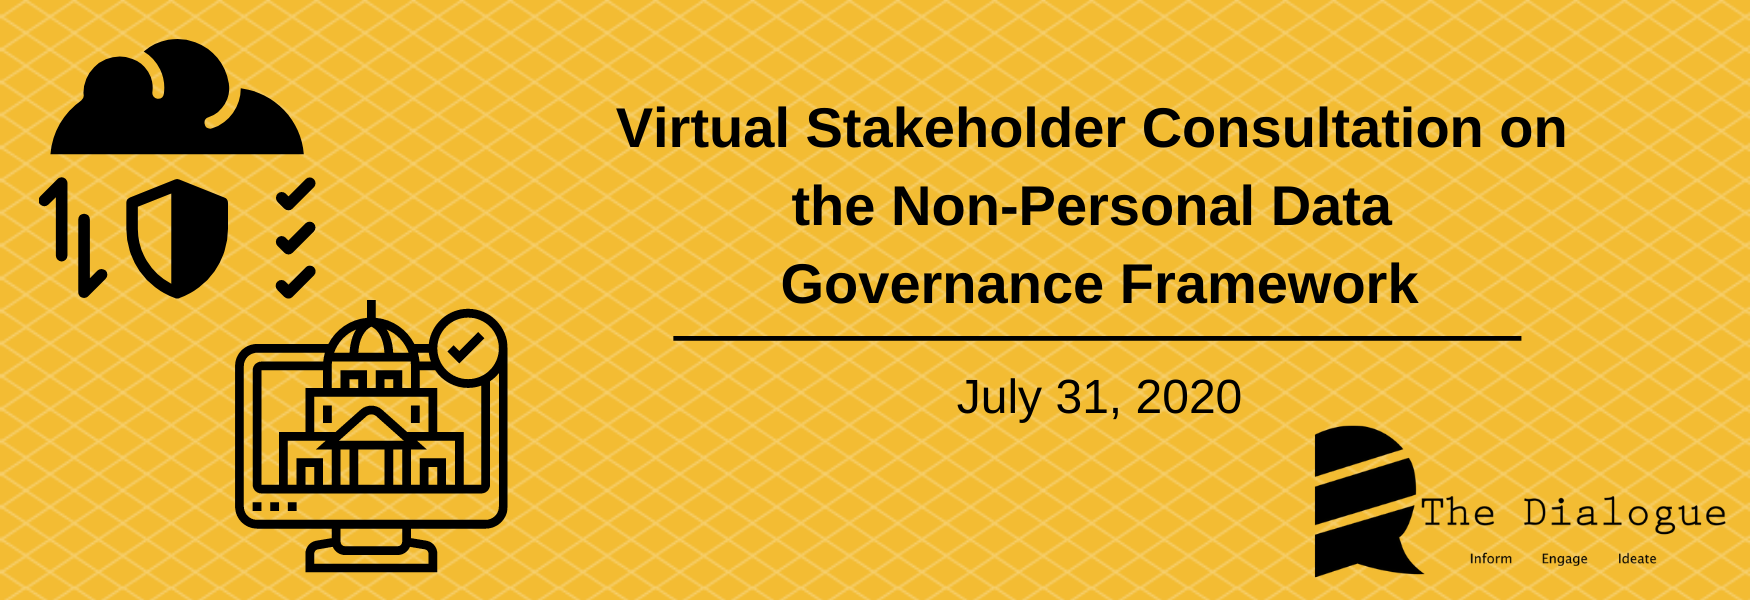 Virtual Stakeholder Consultation on Non-Personal Data Governance